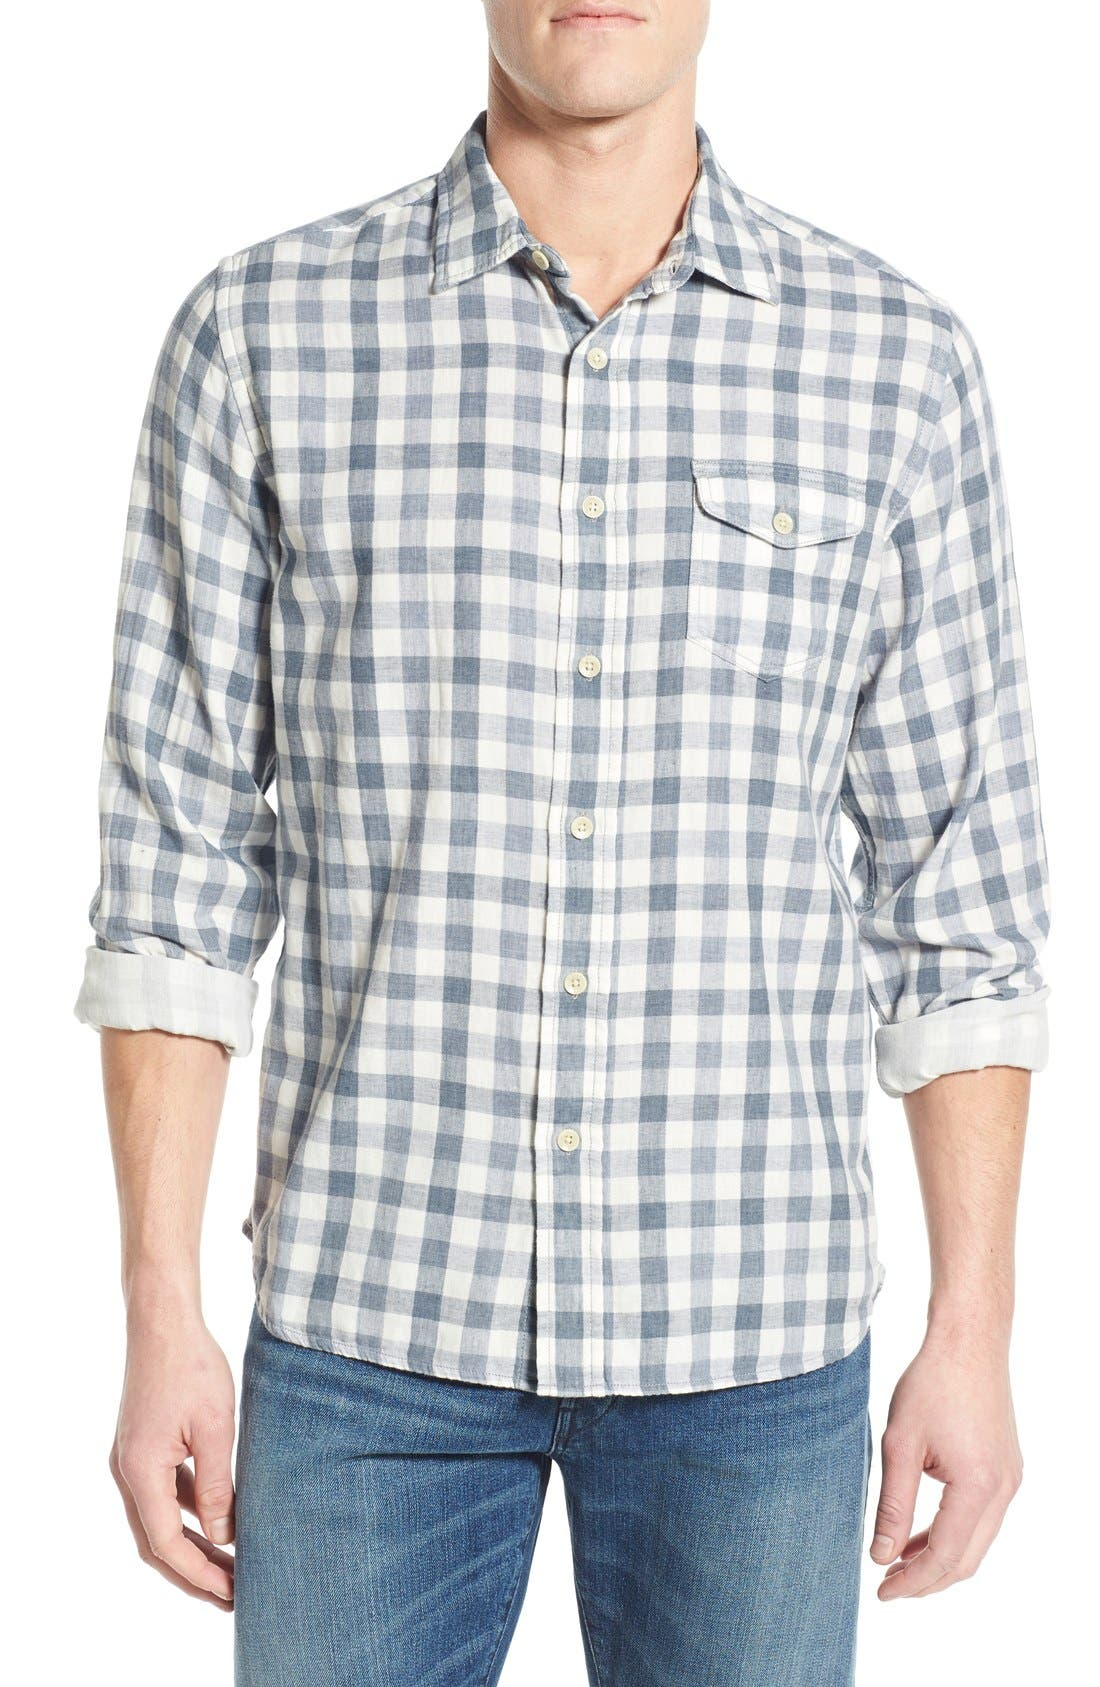 'Denby' Trim Fit Double Woven Sport Shirt,                             Main thumbnail 1, color,                             Heather Blue/ Cream Gingham